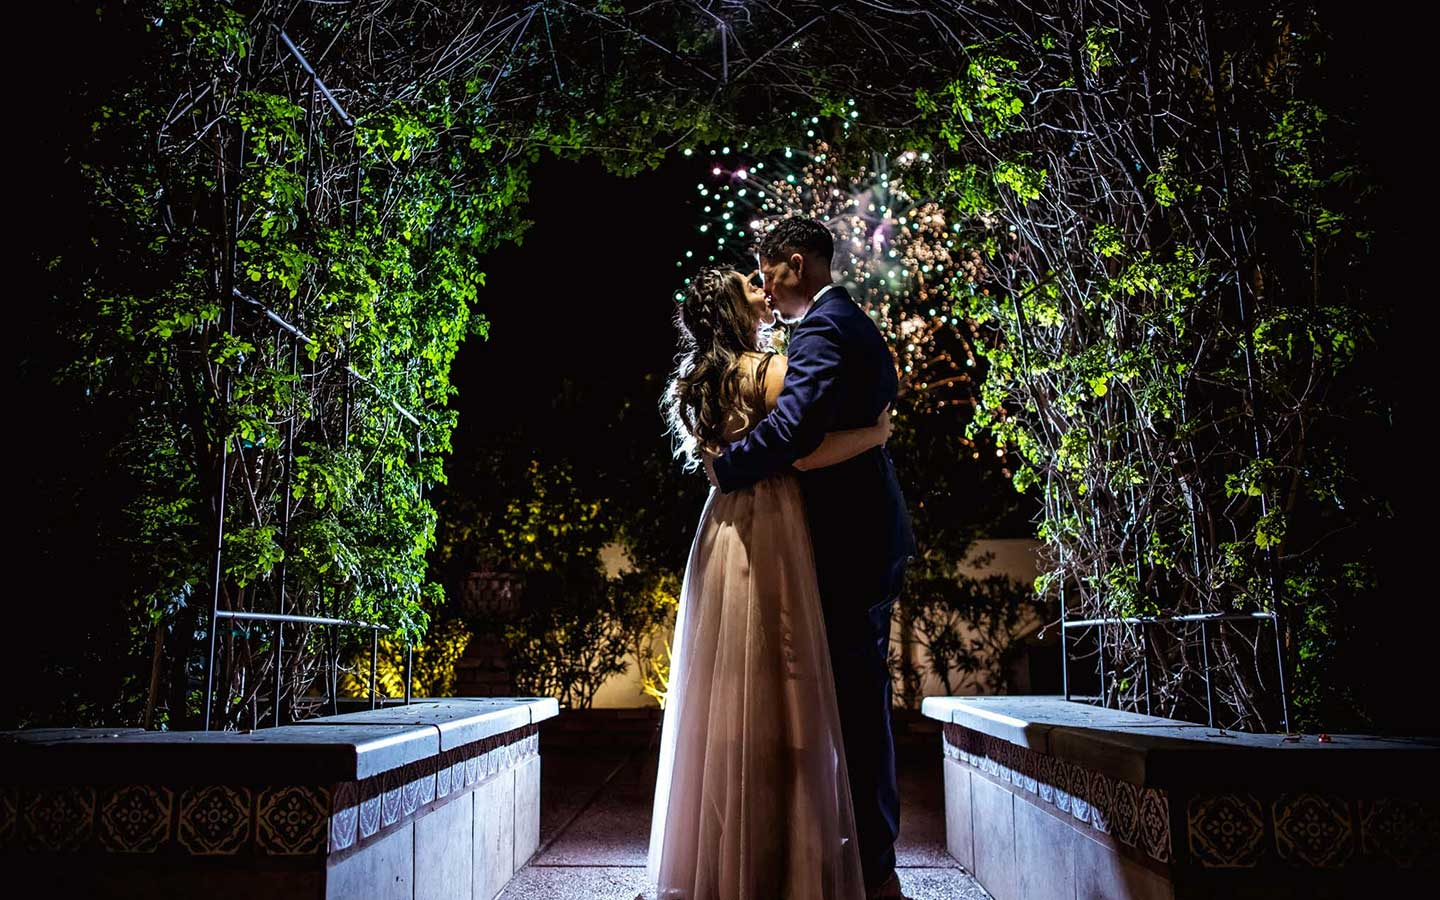 About Wedding Photography